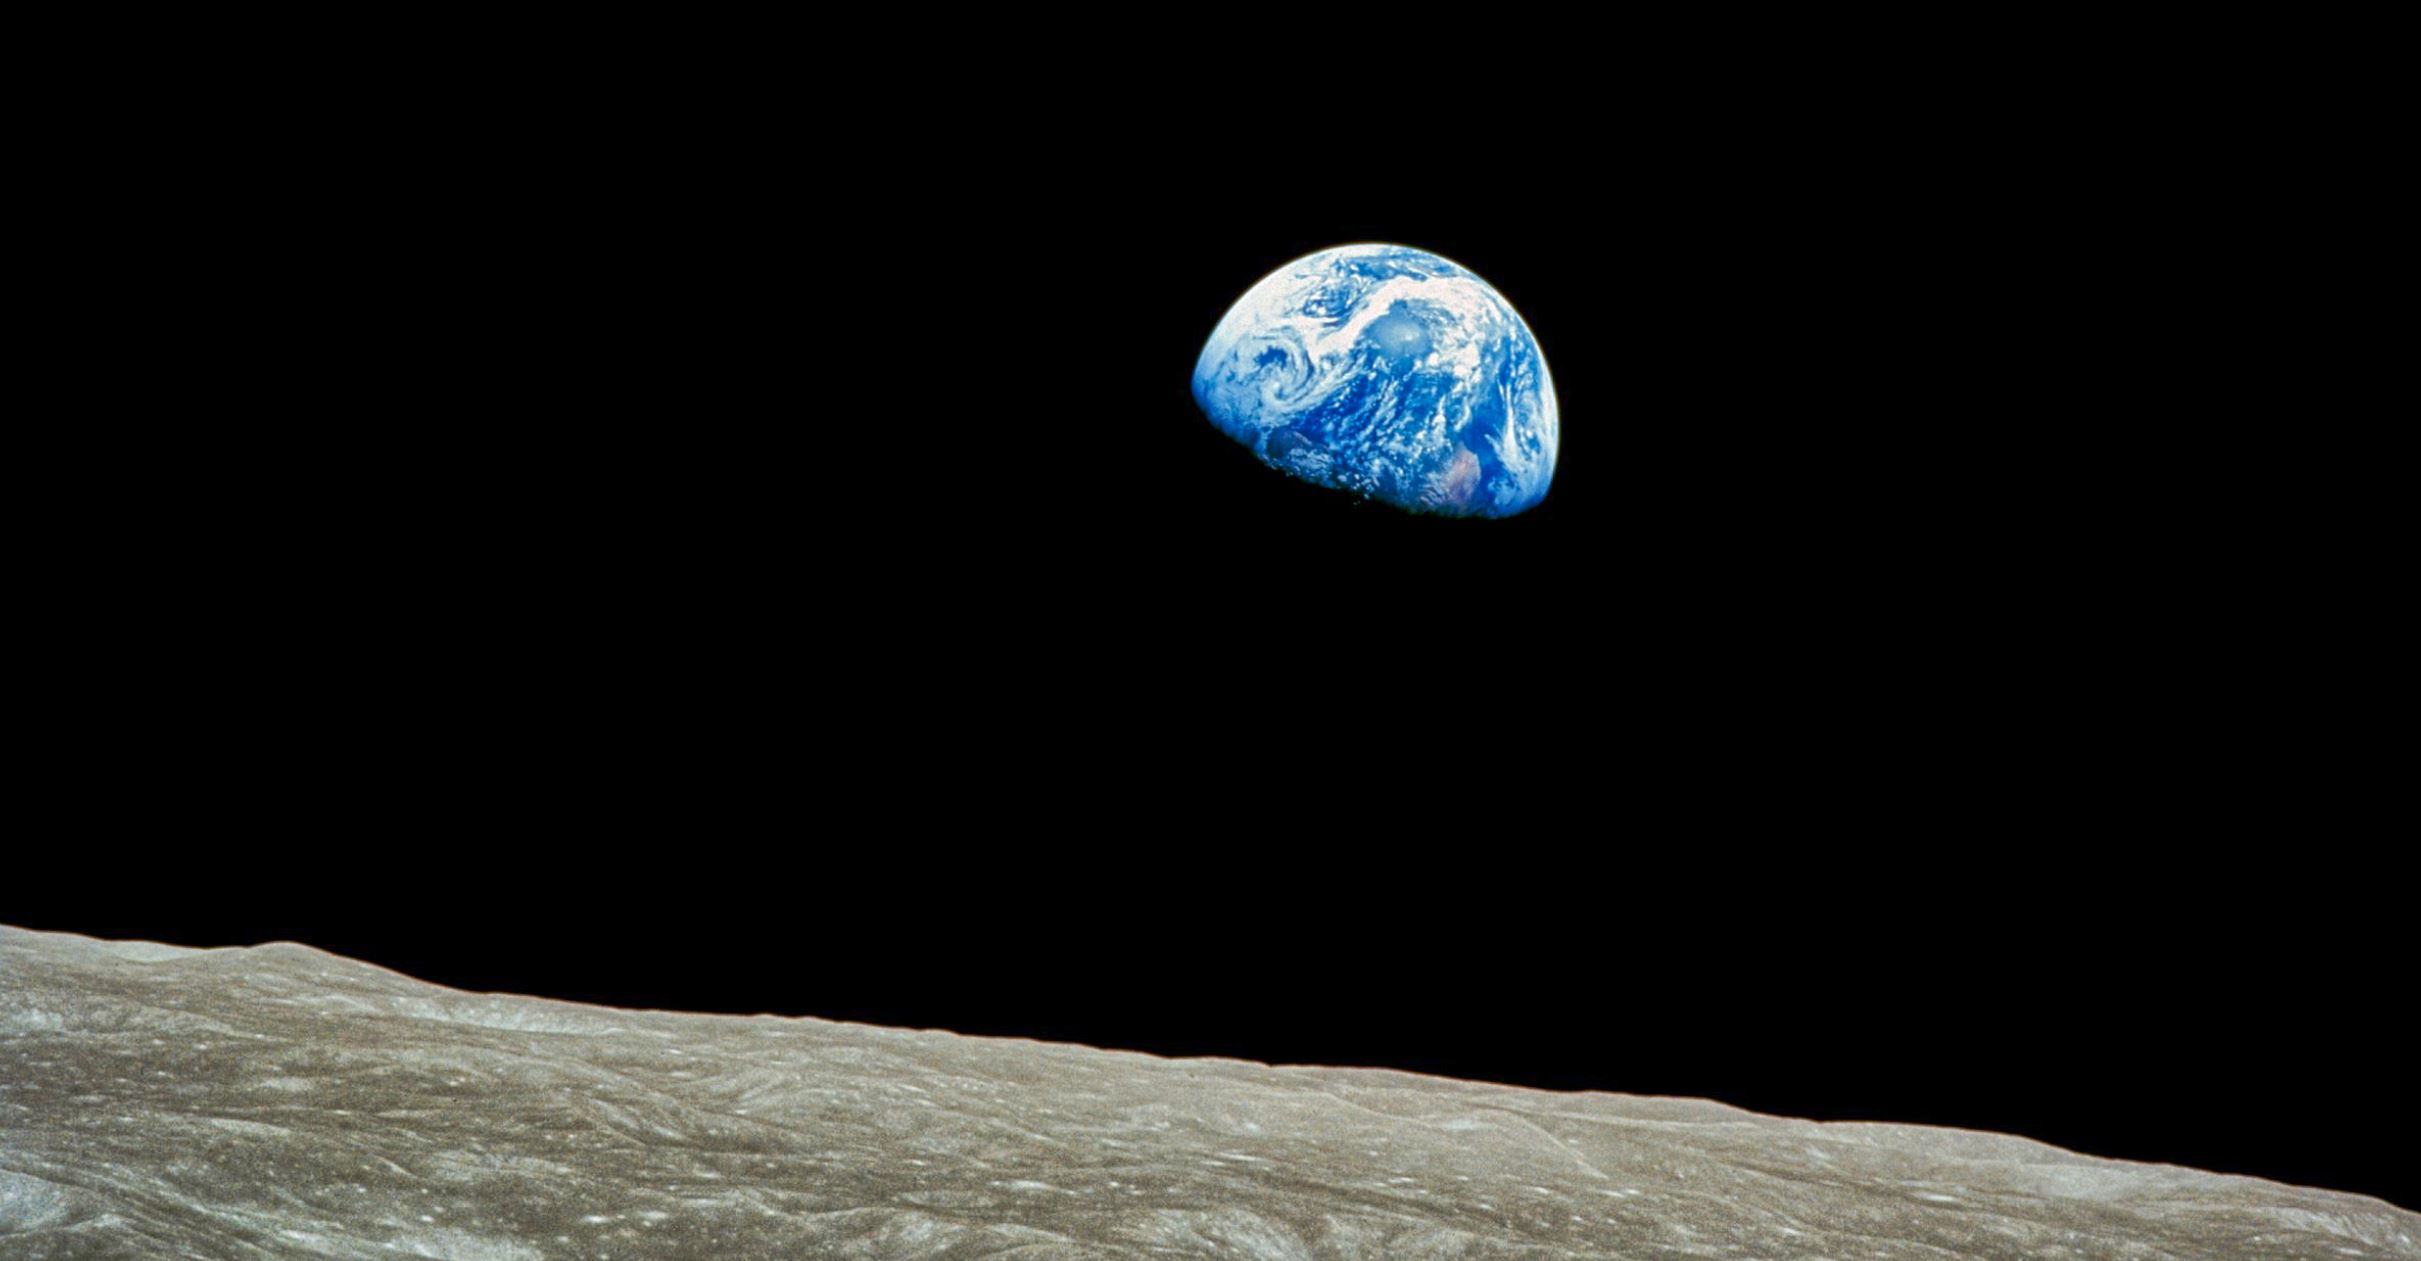 The rather famous earthrise picture - Image Credit:  NASA/Bill Anders via Wikimedia Commons  - HDR tune by  Universal-Sci